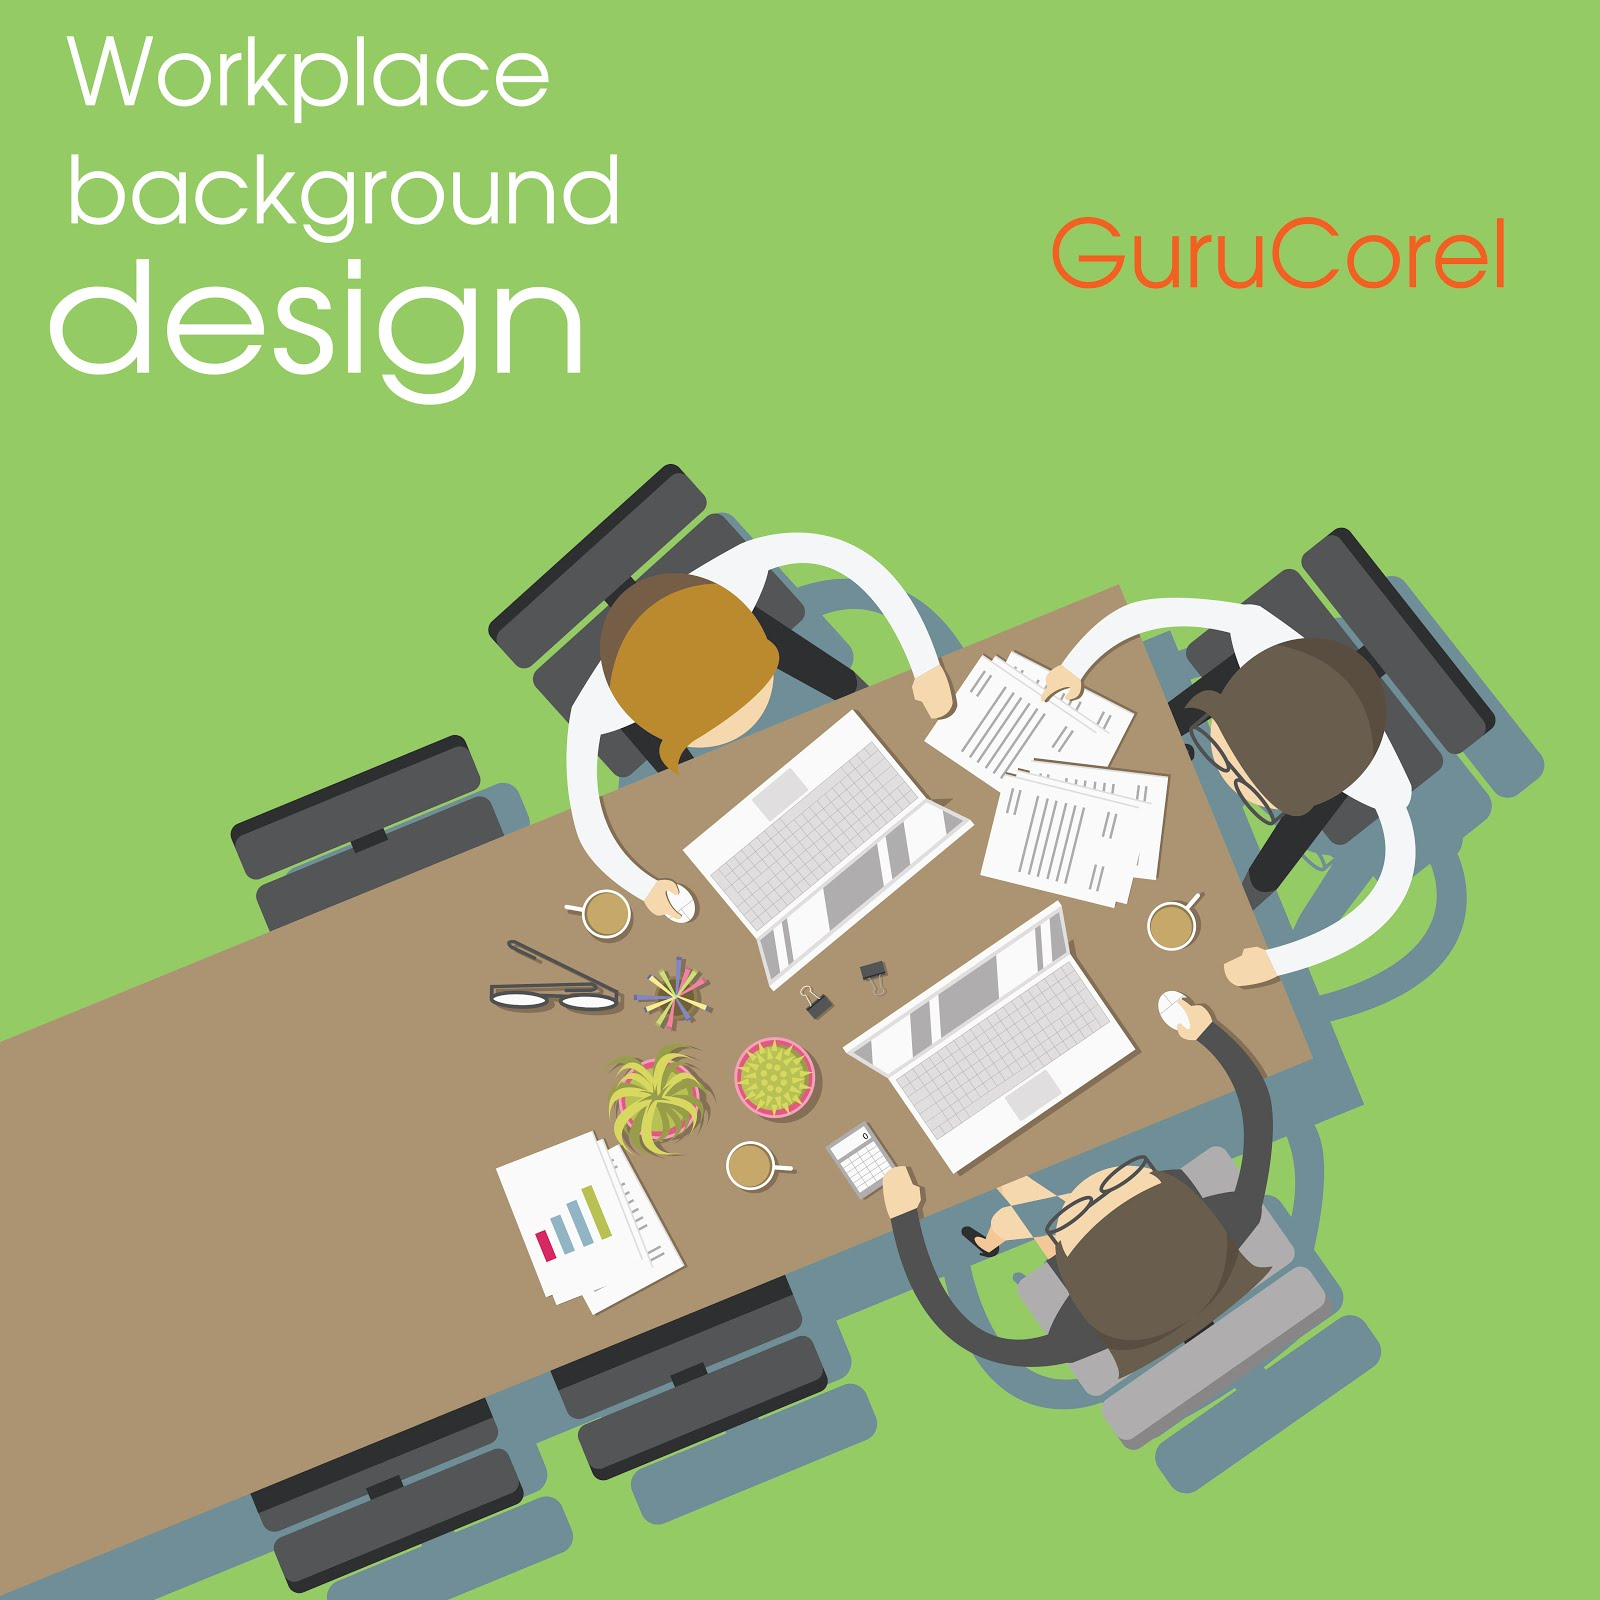 Free Vector Workplace Background Design - Guru Corel